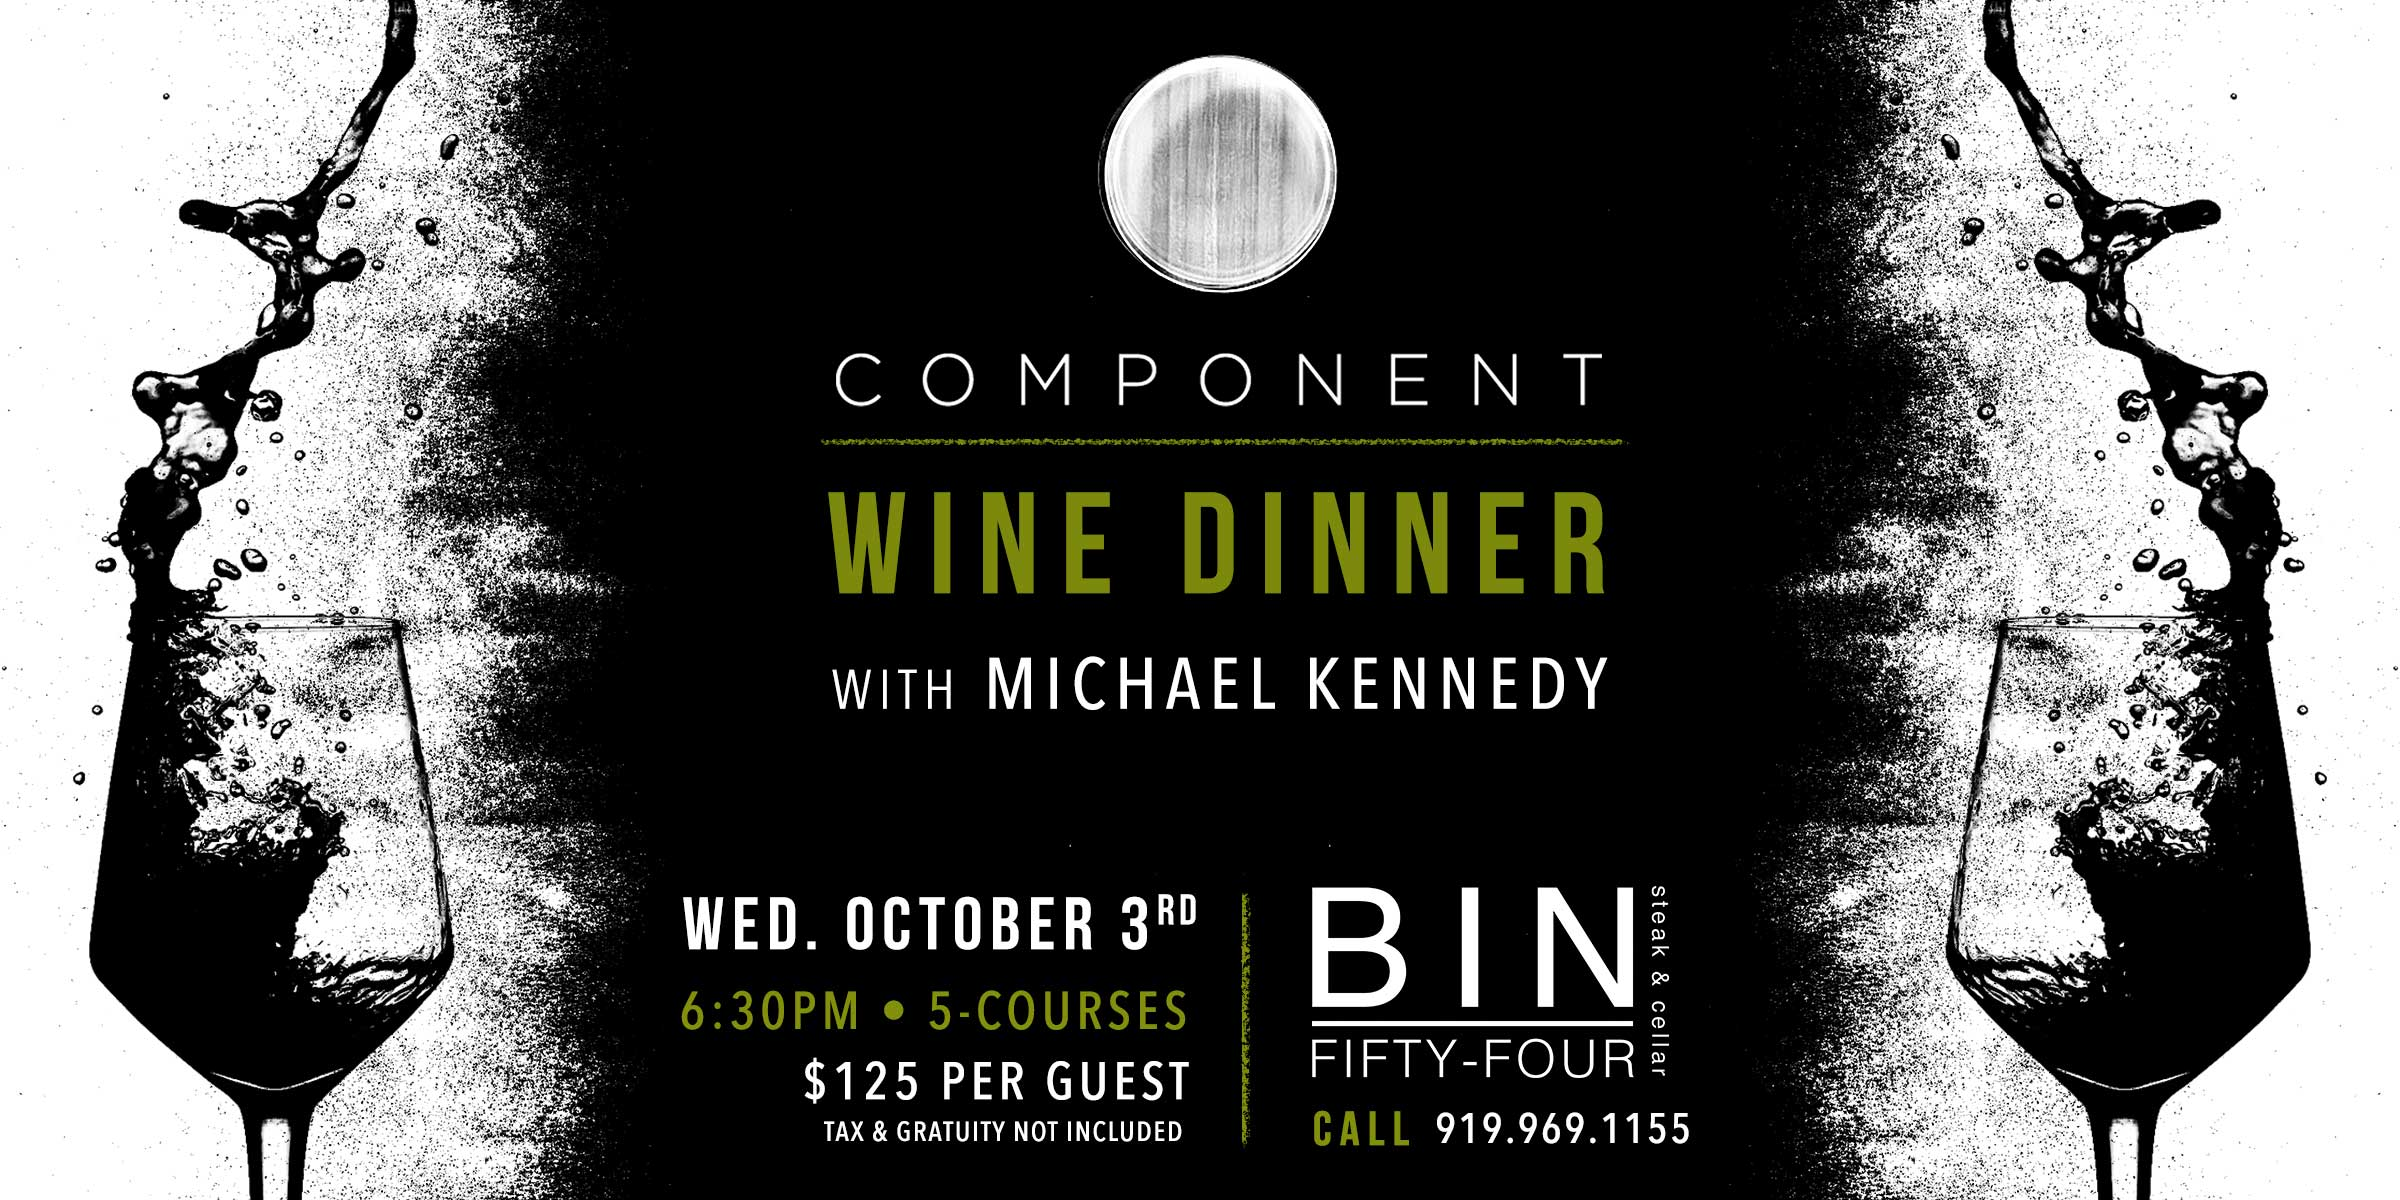 Component Wine Dinner With Michael Kennedy